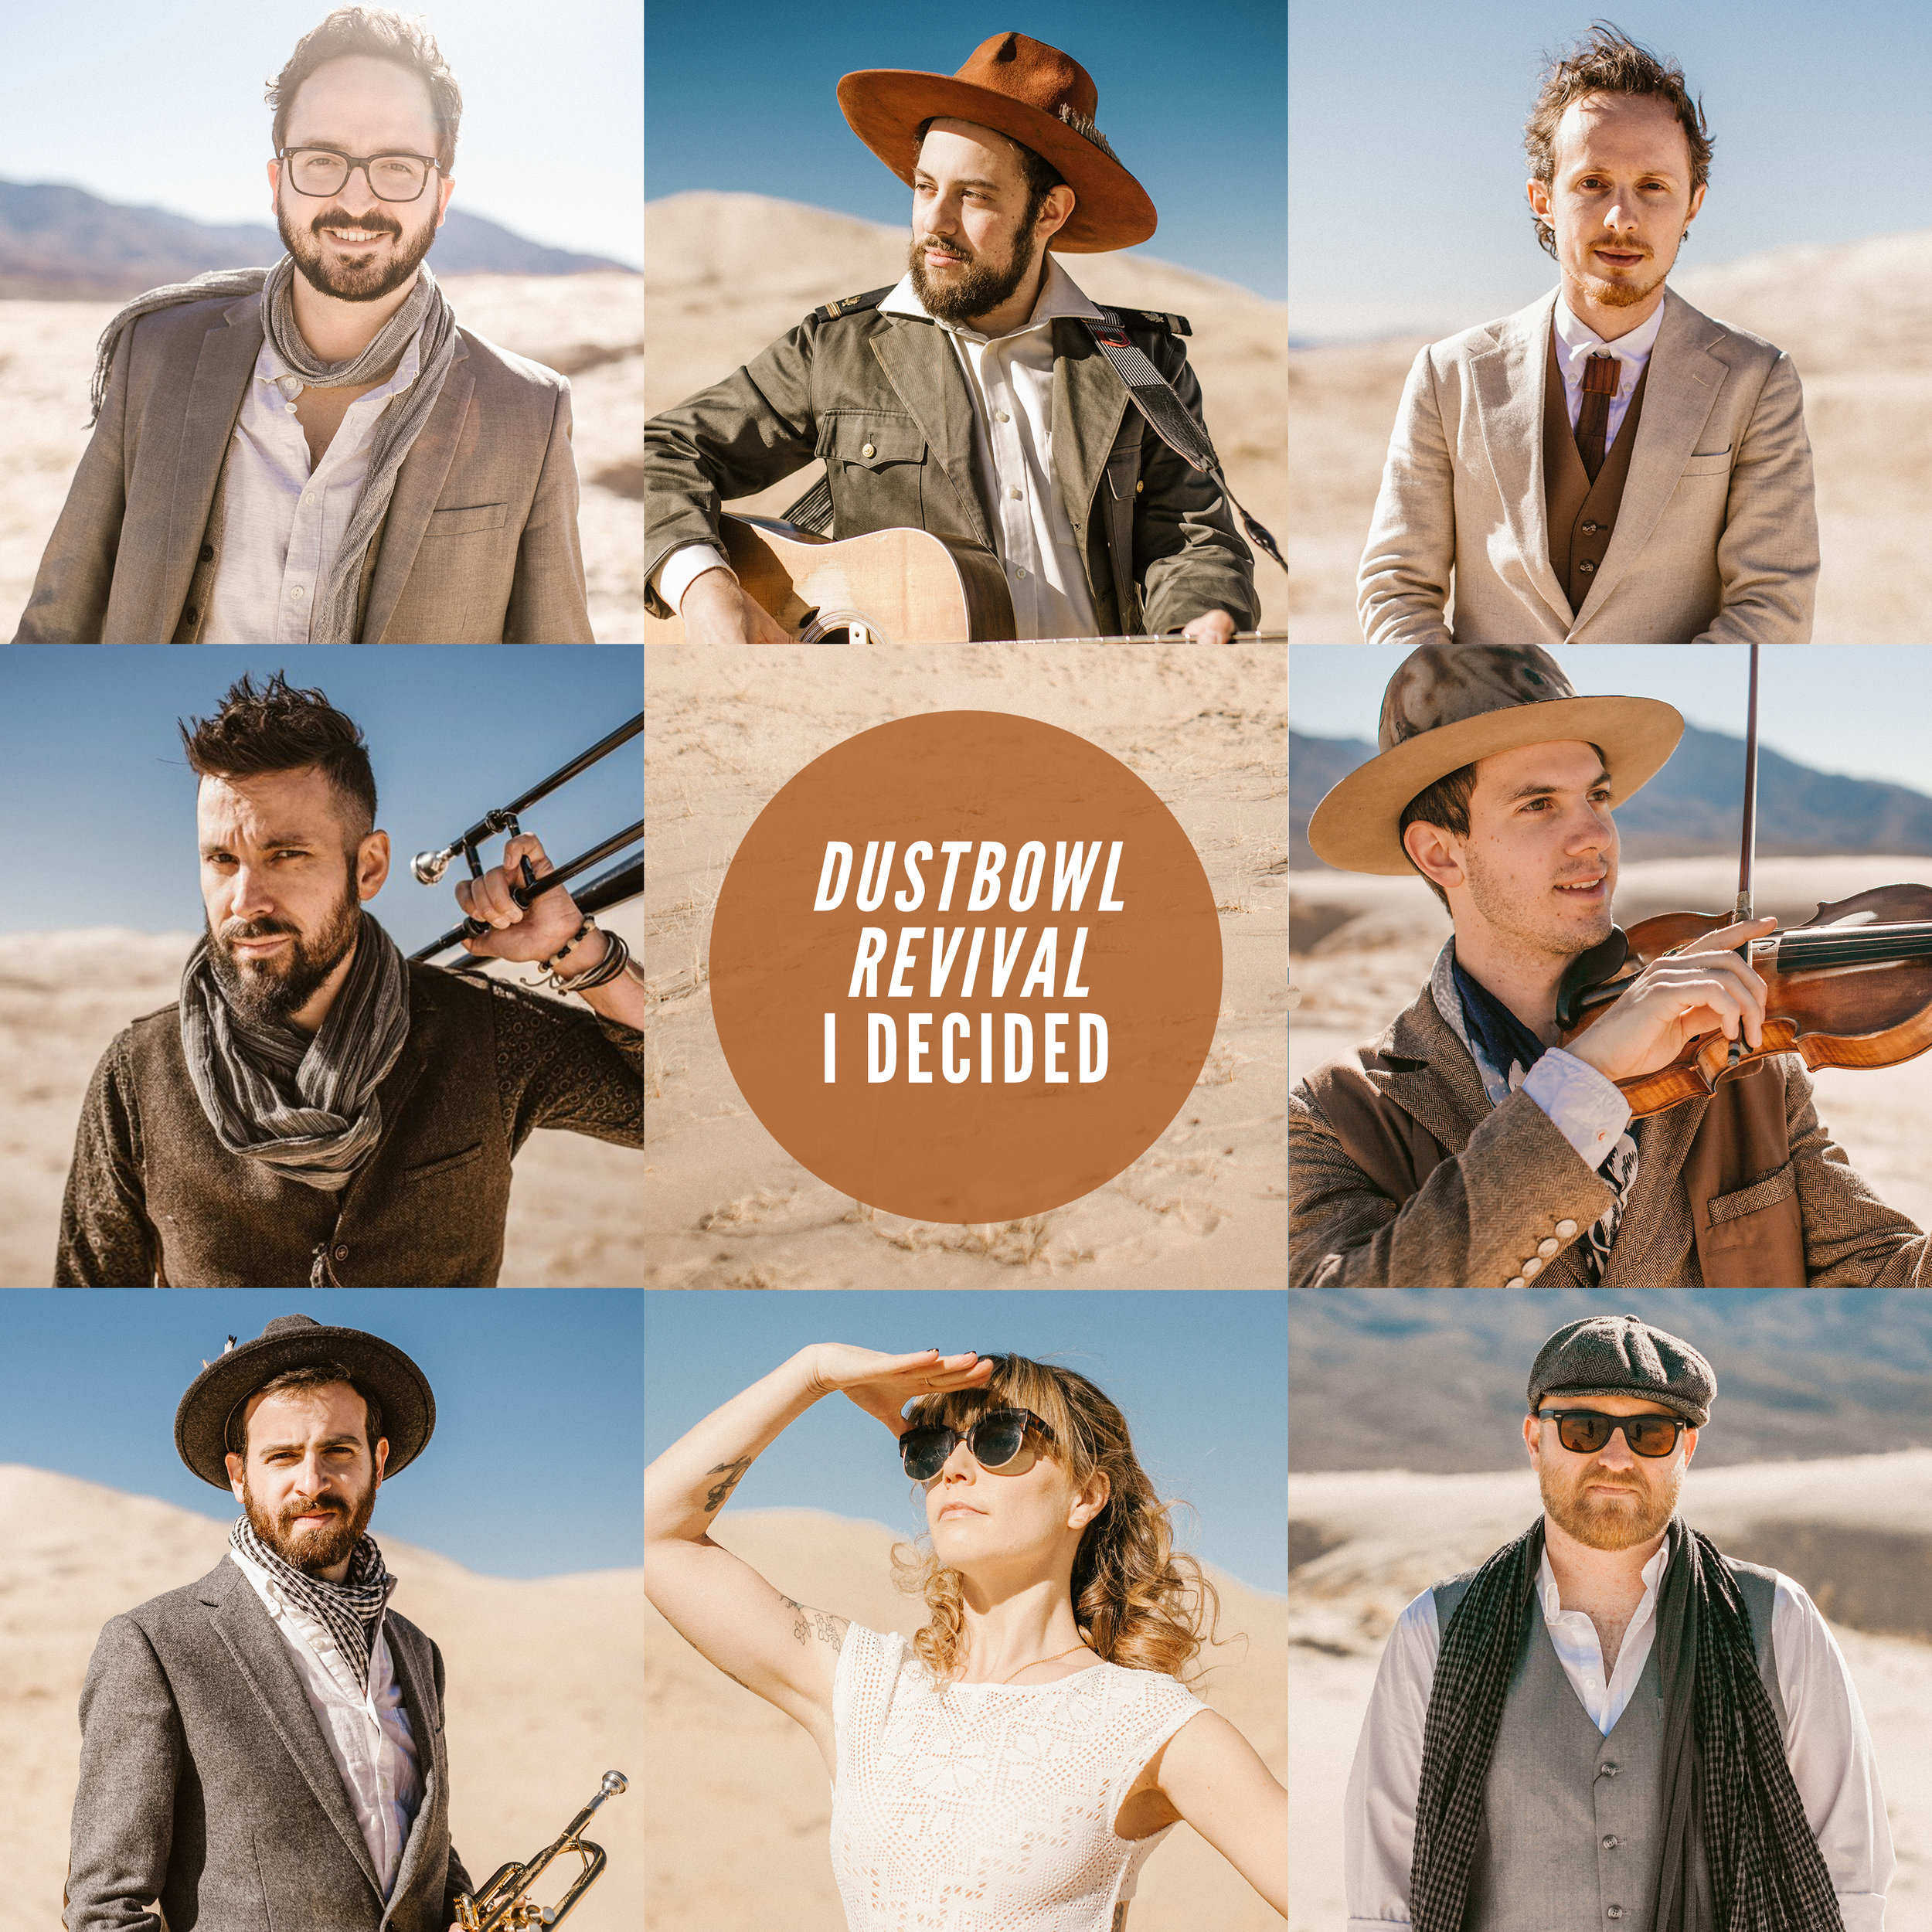 SIG-CD-2097 The Dustbowl Revival - I Decided.jpg